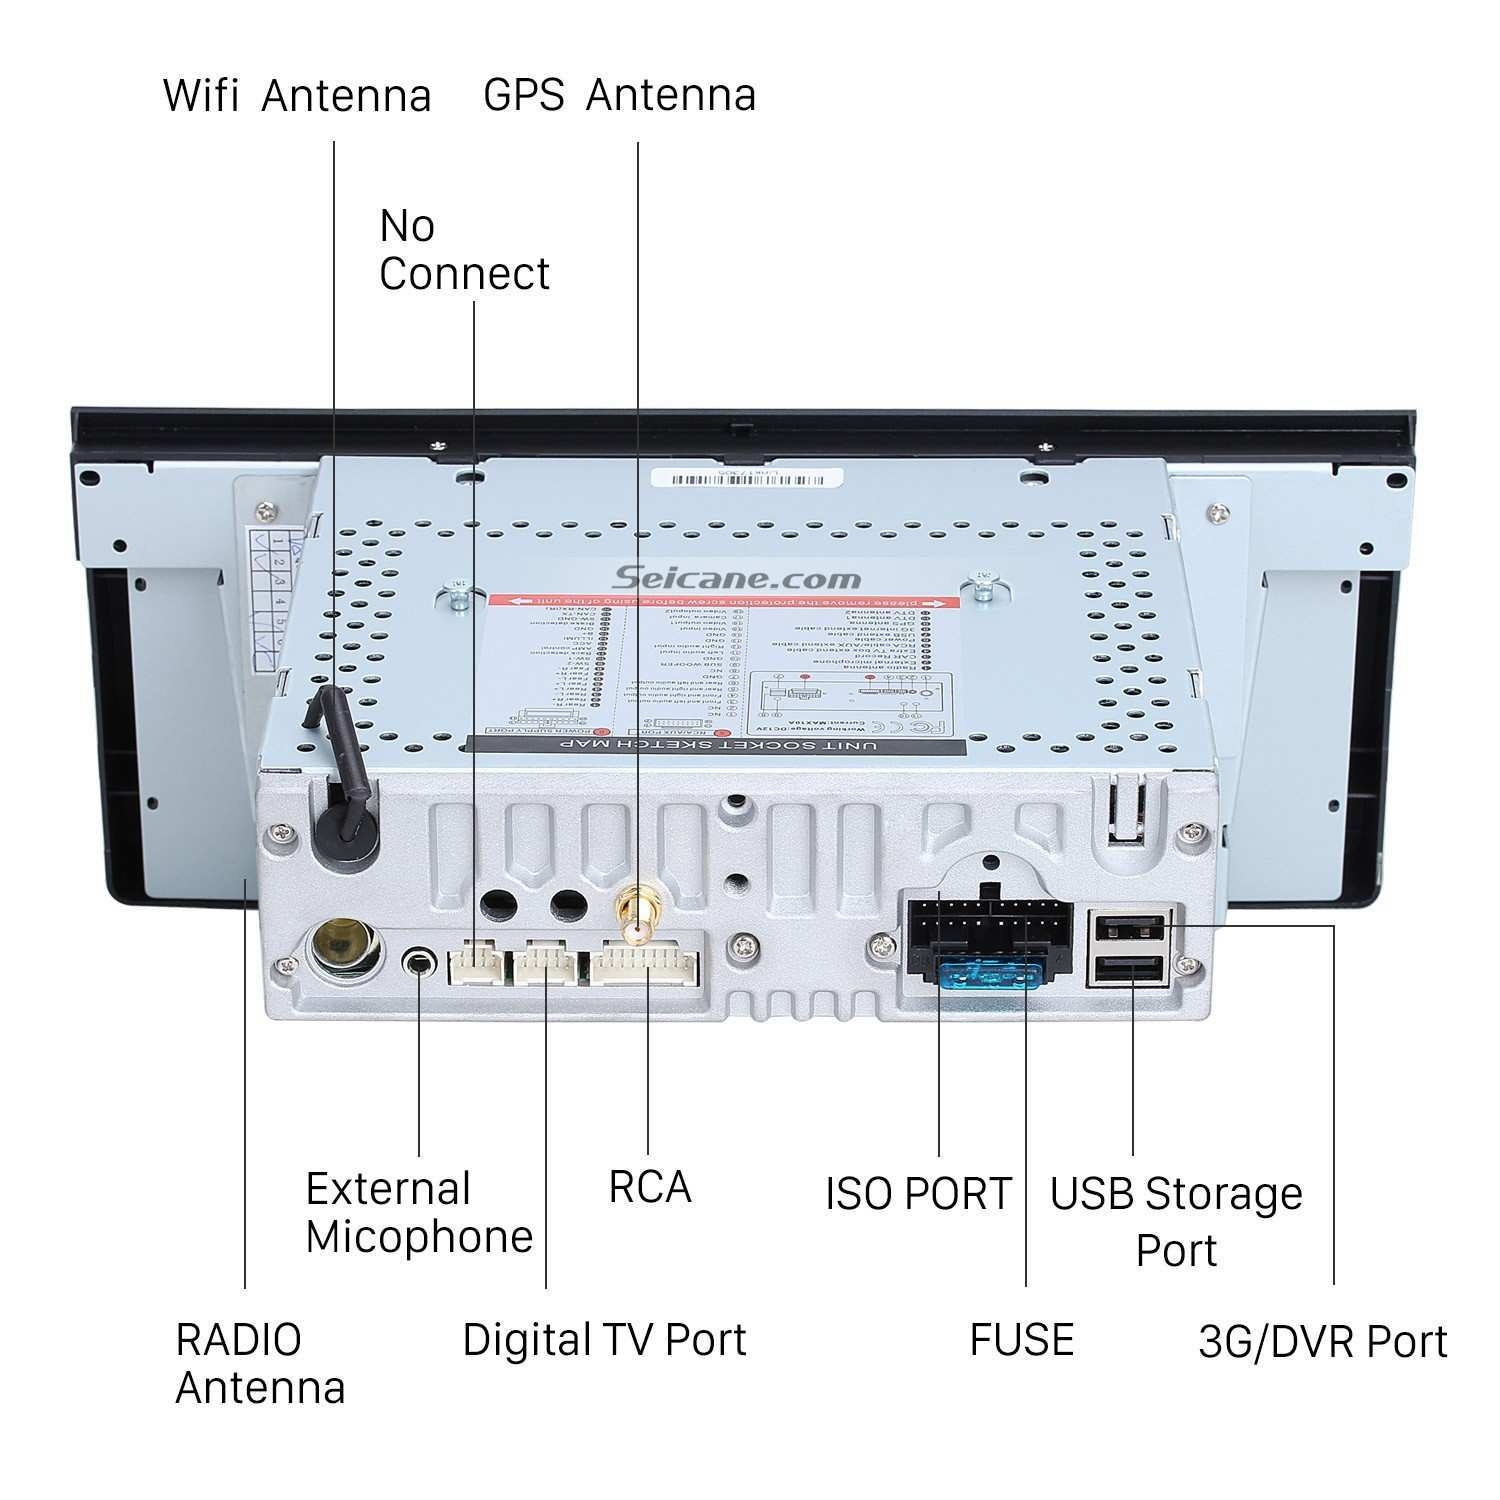 surround sound wiring diagram Download-surround sound wiring diagram Collection Surround sound Wiring Diagram Best Cheap All In e android DOWNLOAD Wiring Diagram 6-a